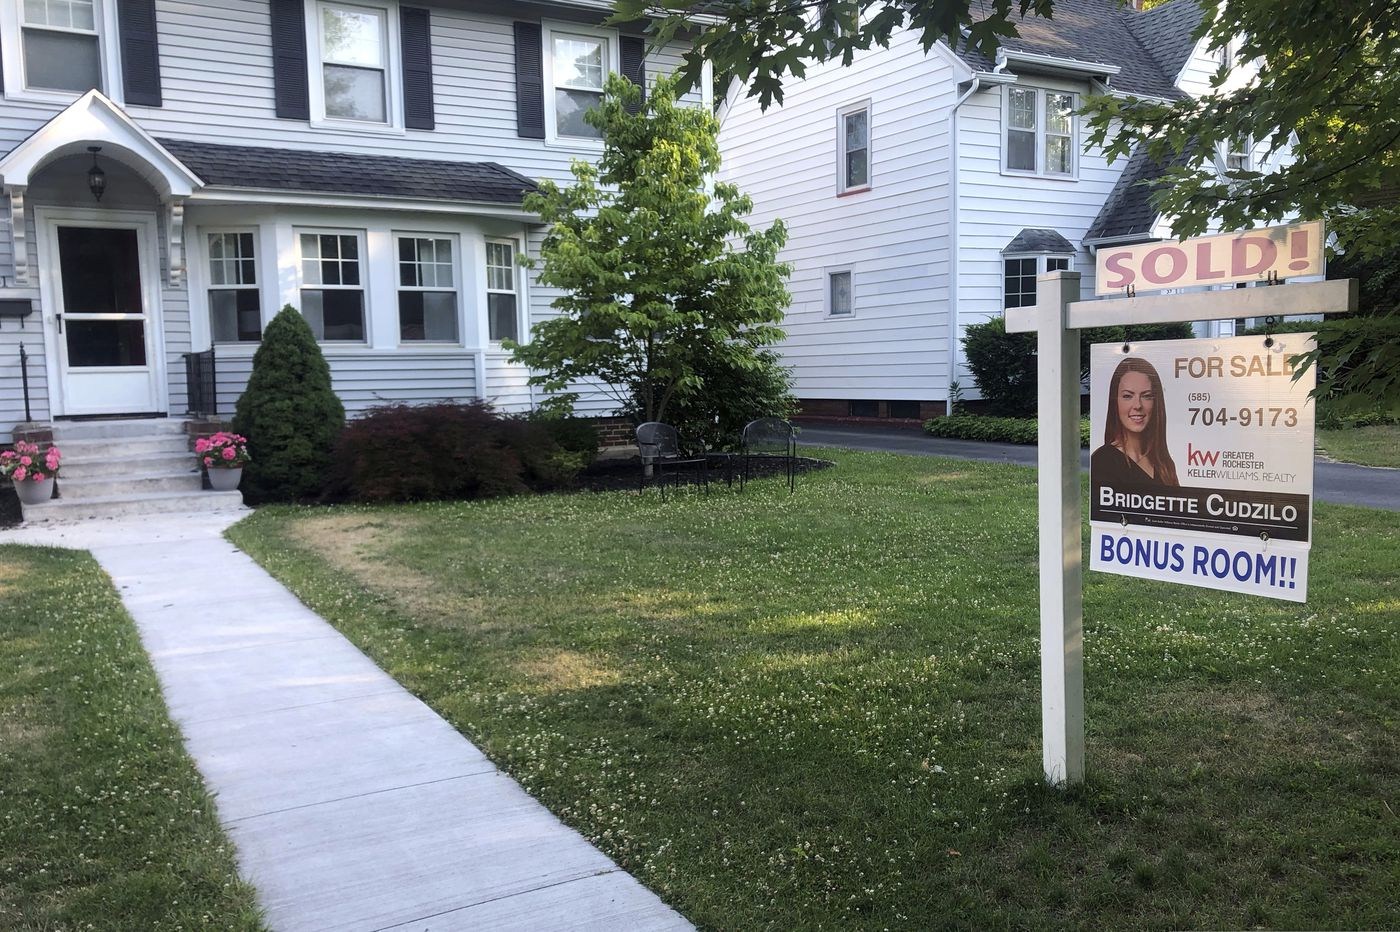 Freddie Mac reports record-low U.S. mortgage rates for the third consecutive week